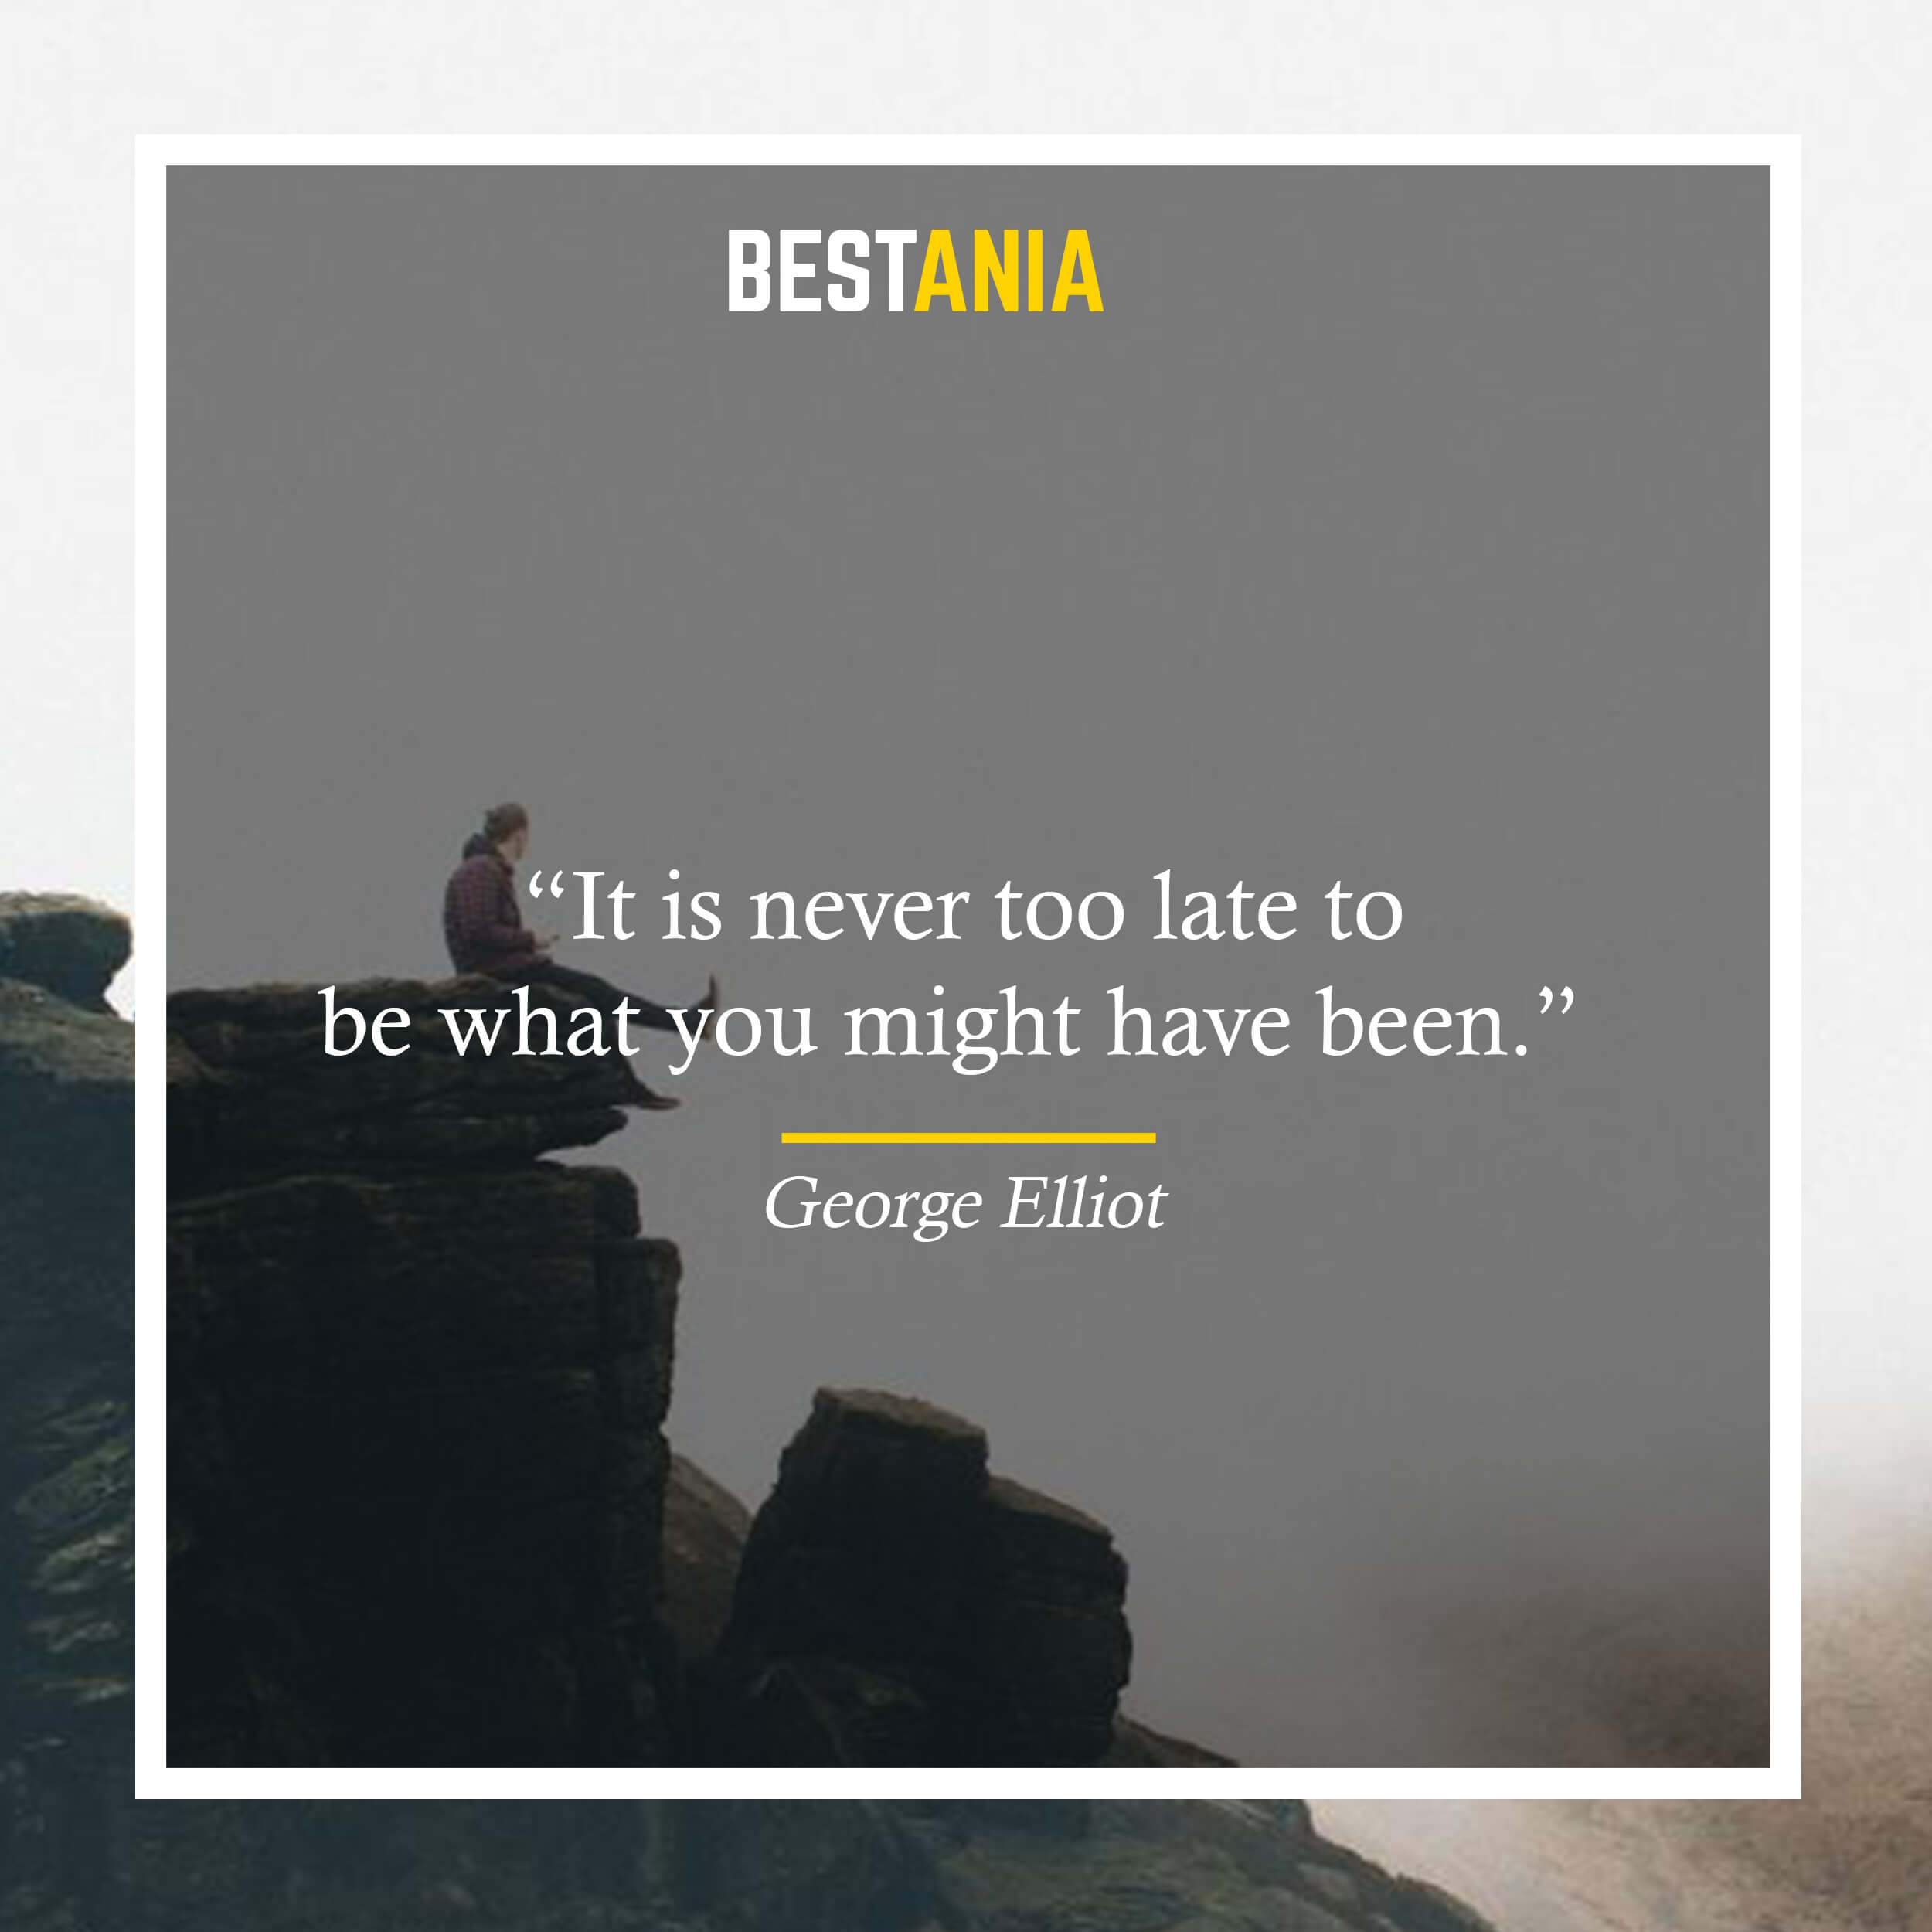 """It is never too late to be what you might have been."" – George Elliot"